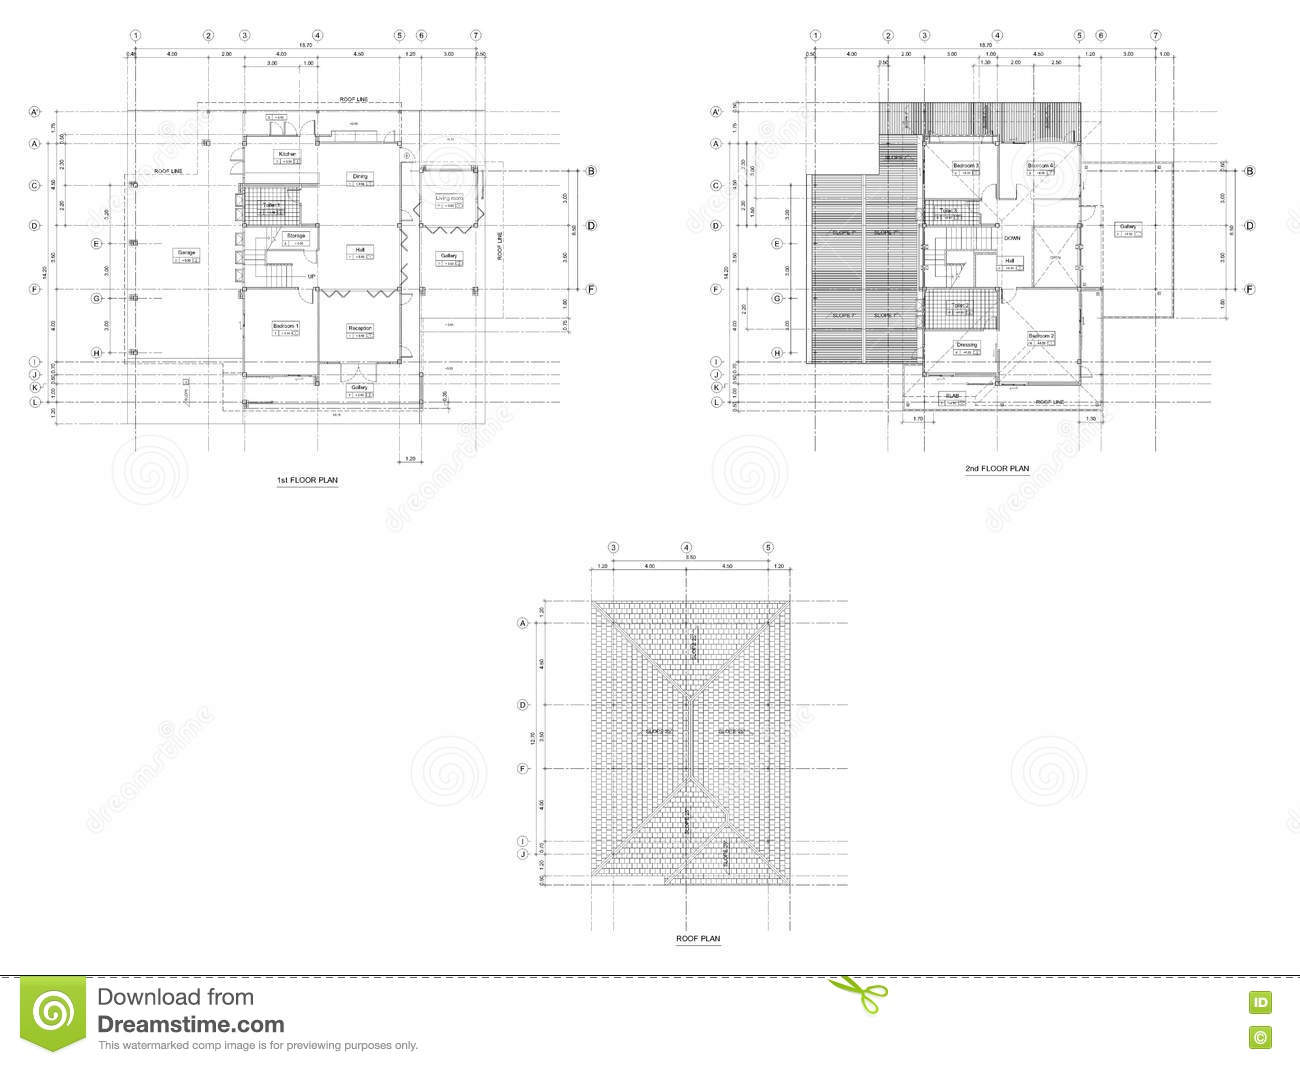 Dessin de plan d 39 architecture illustration stock image for Dessin plan architecture